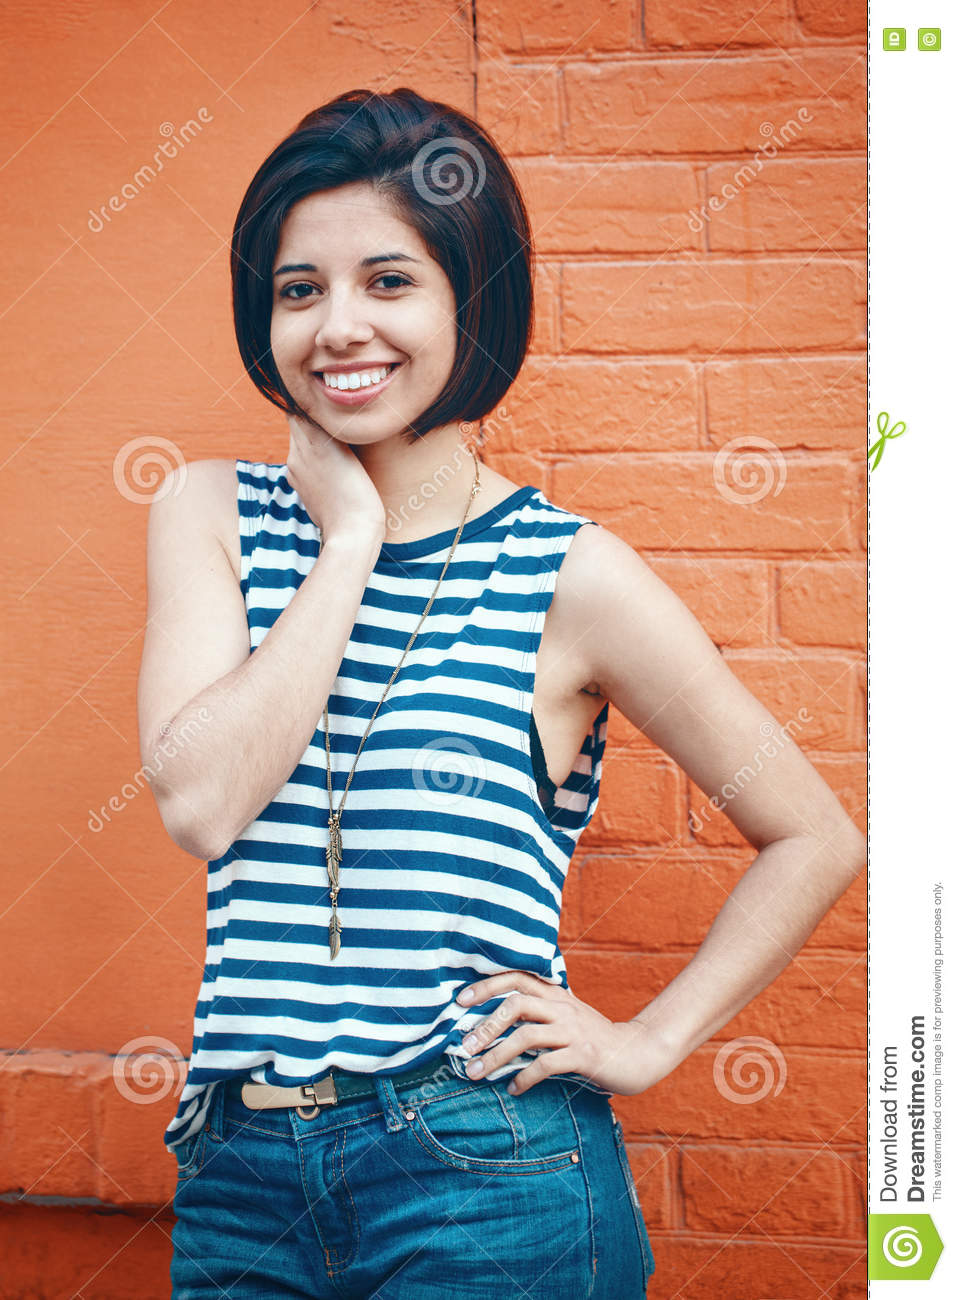 98a4d822ad71 Portrait Of Beautiful Smiling Young Hipster Latin Hispanic Girl ...